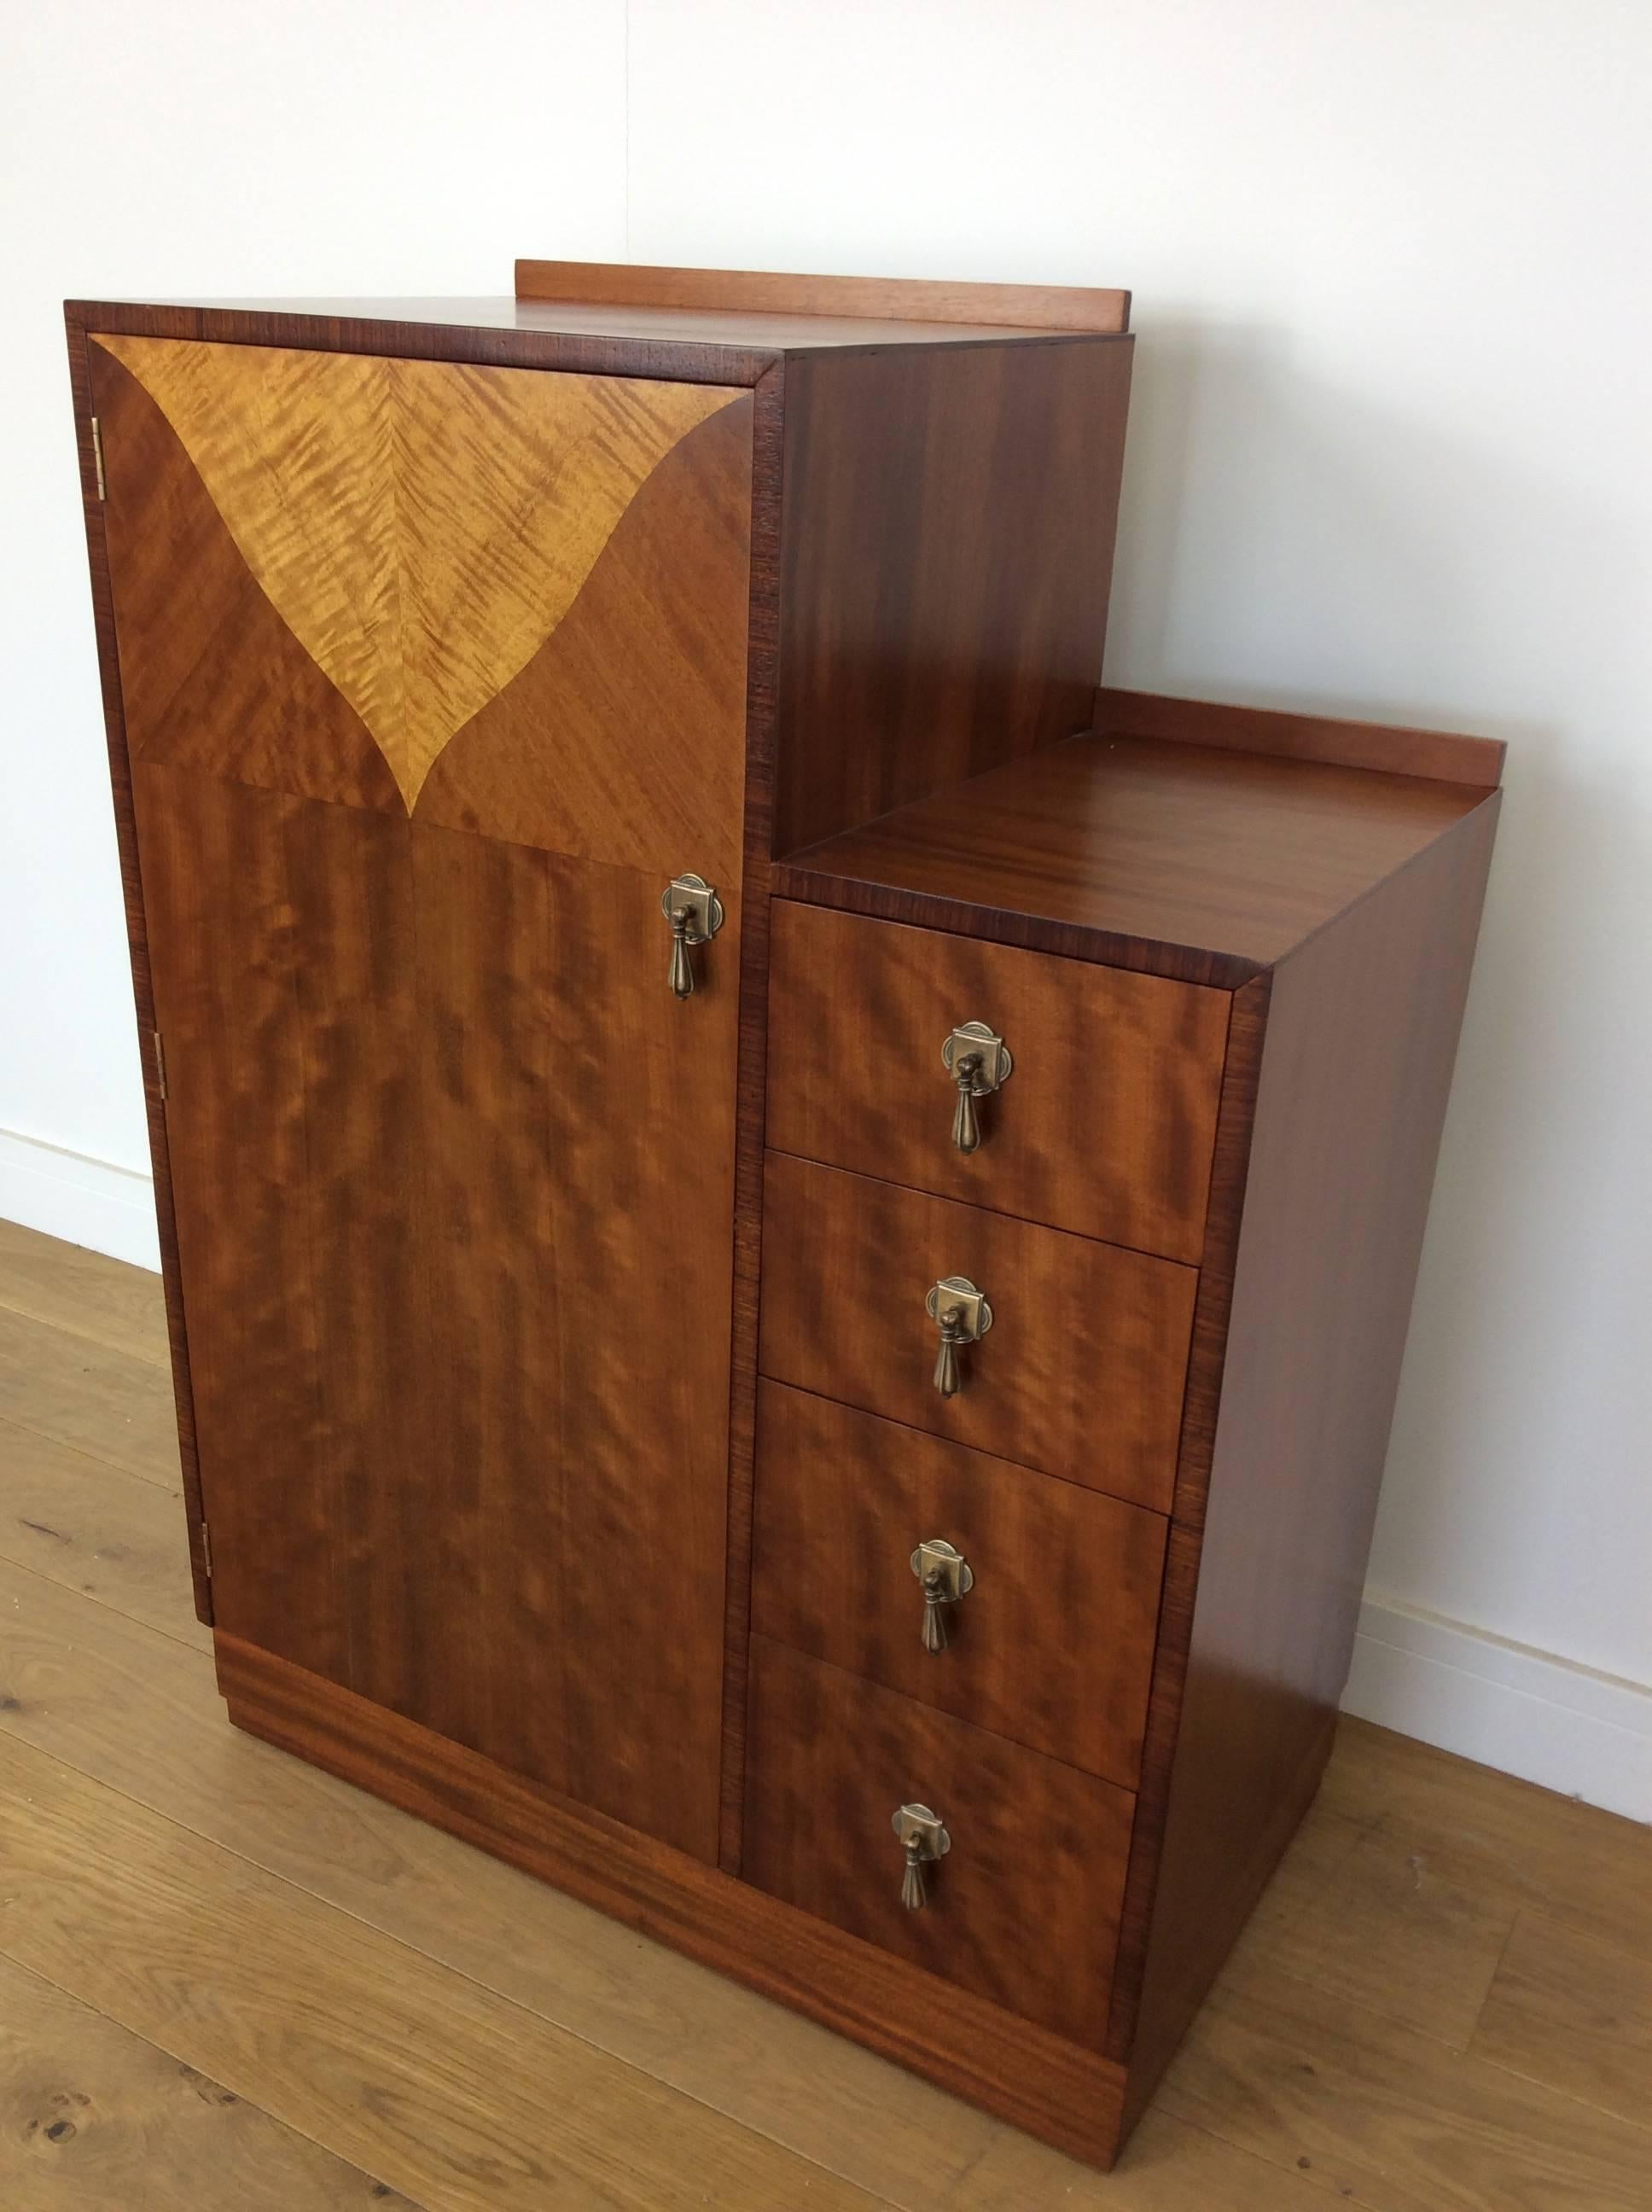 English Art Deco Bedroom Set In Satin Maple By Maple U0026 Co.